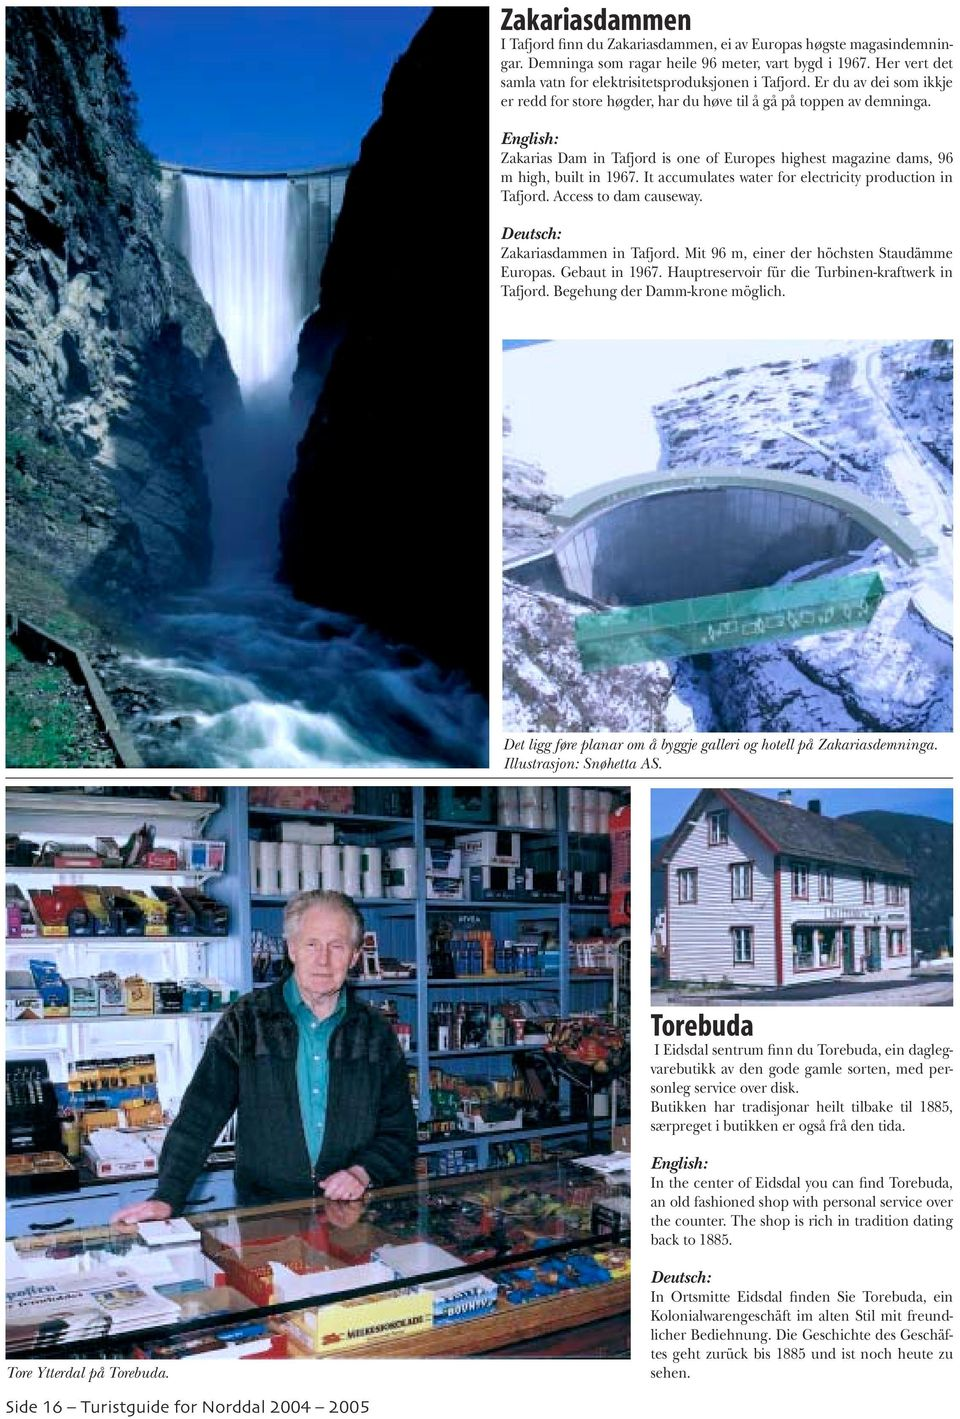 English: Zakarias Dam in Tafjord is one of Europes highest magazine dams, 96 m high, built in 1967. It accumulates water for electricity production in Tafjord. Access to dam causeway.